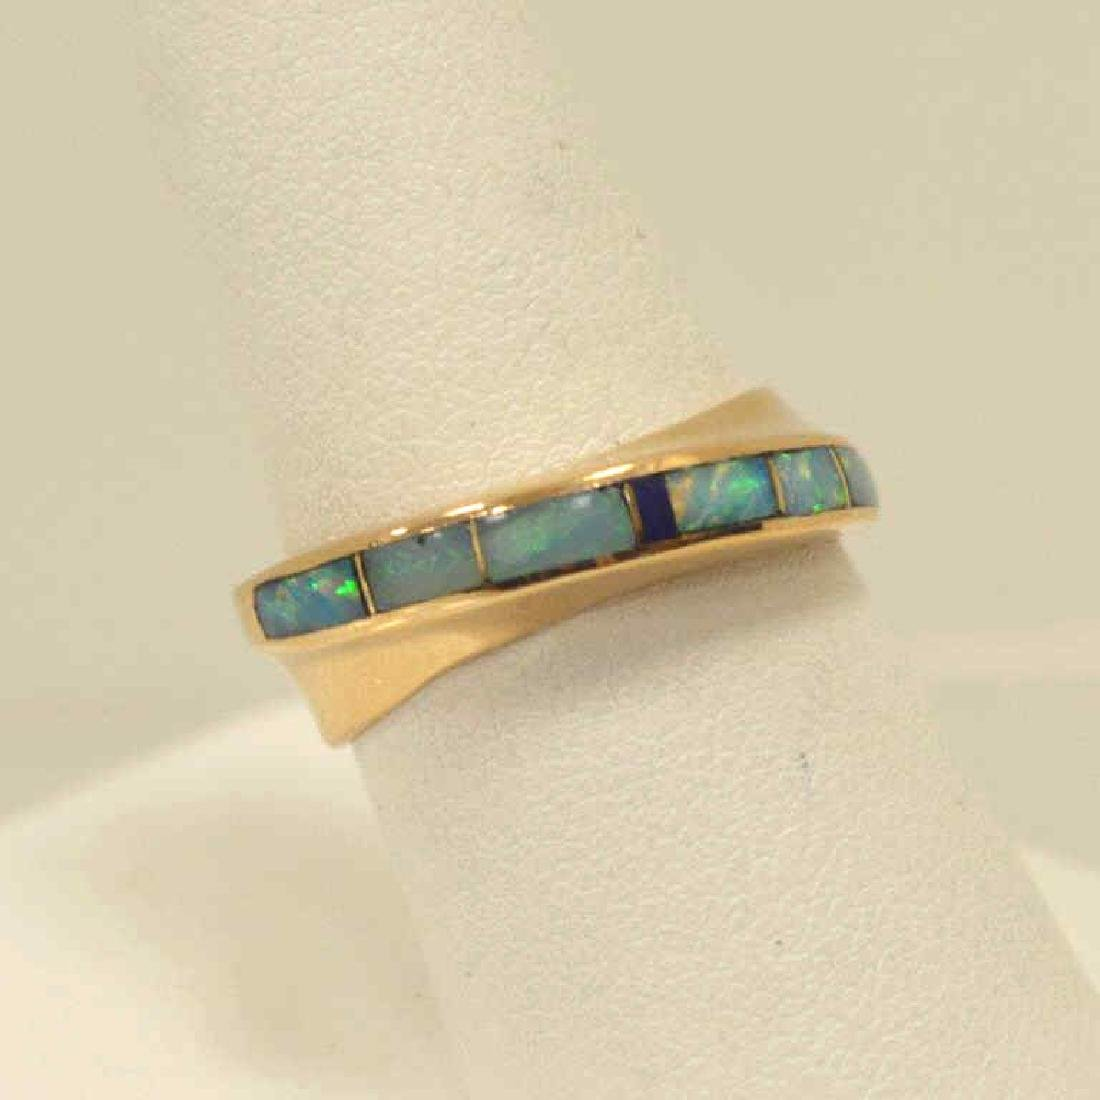 14kt yellow gold opal inlay ring - 2